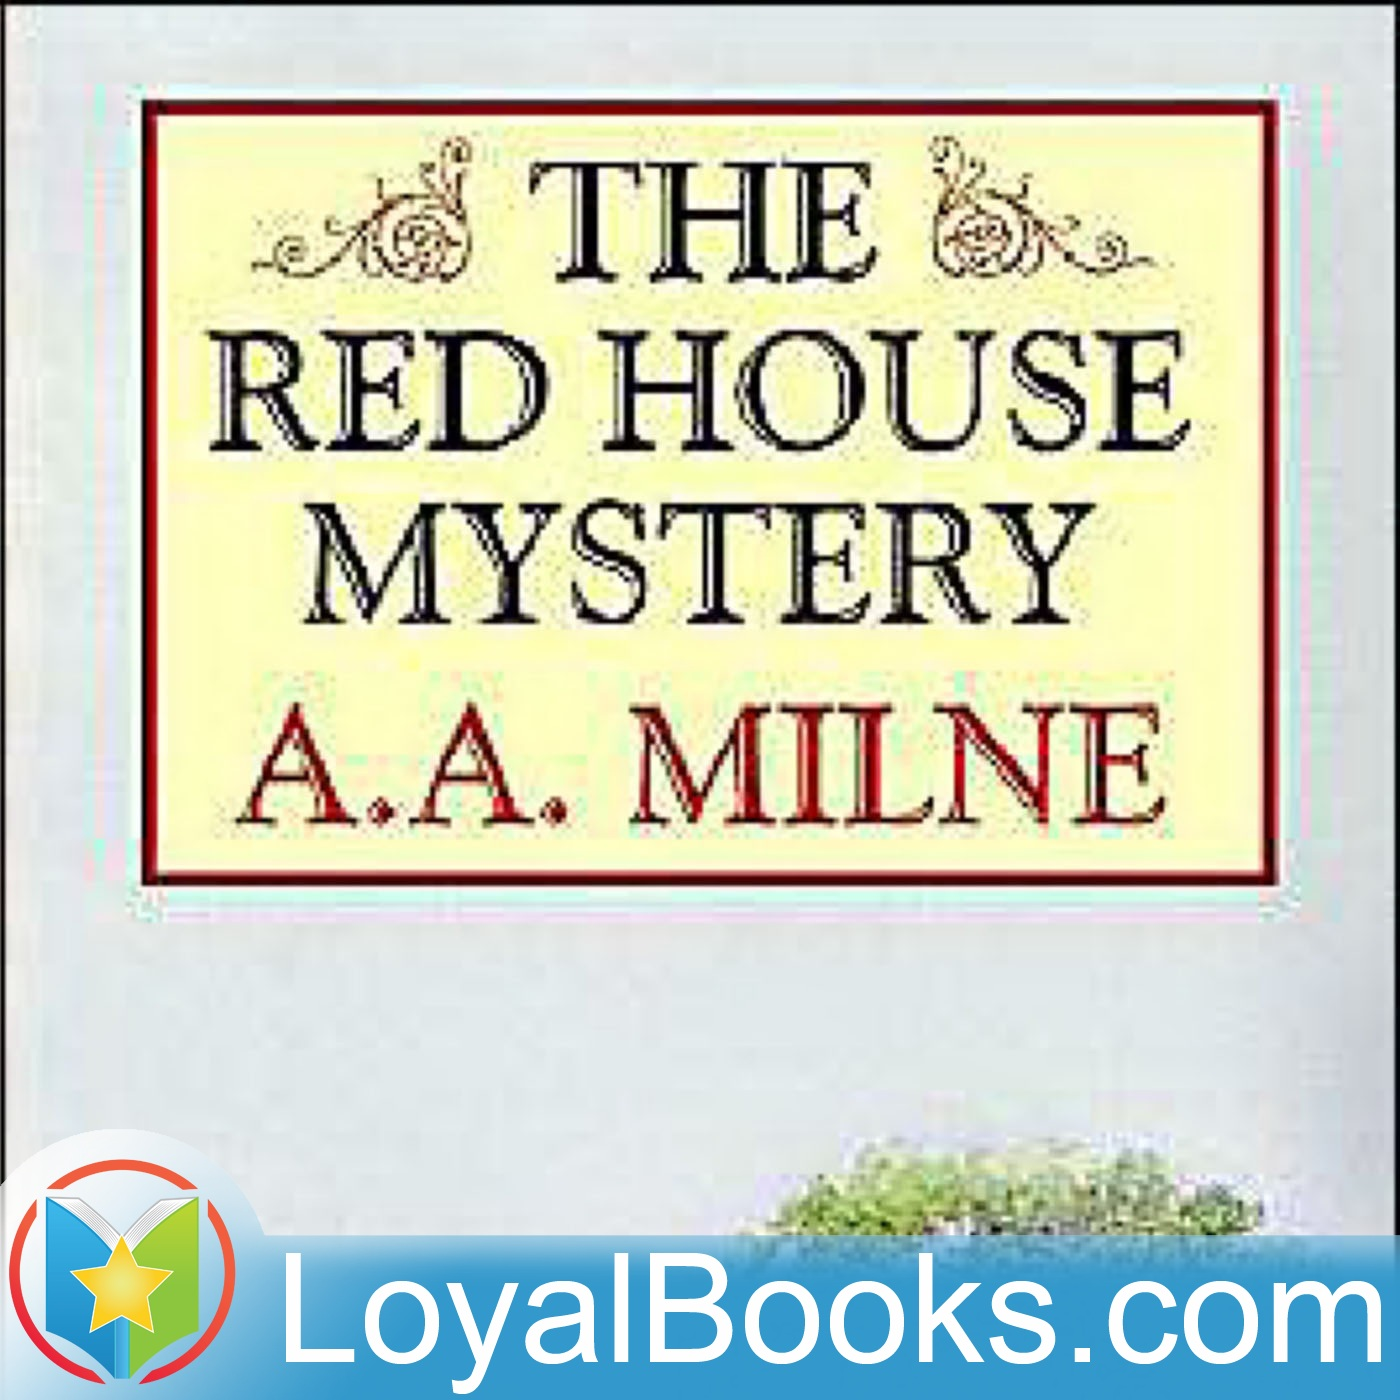 <![CDATA[The Red House Mystery by A. A. Milne]]>